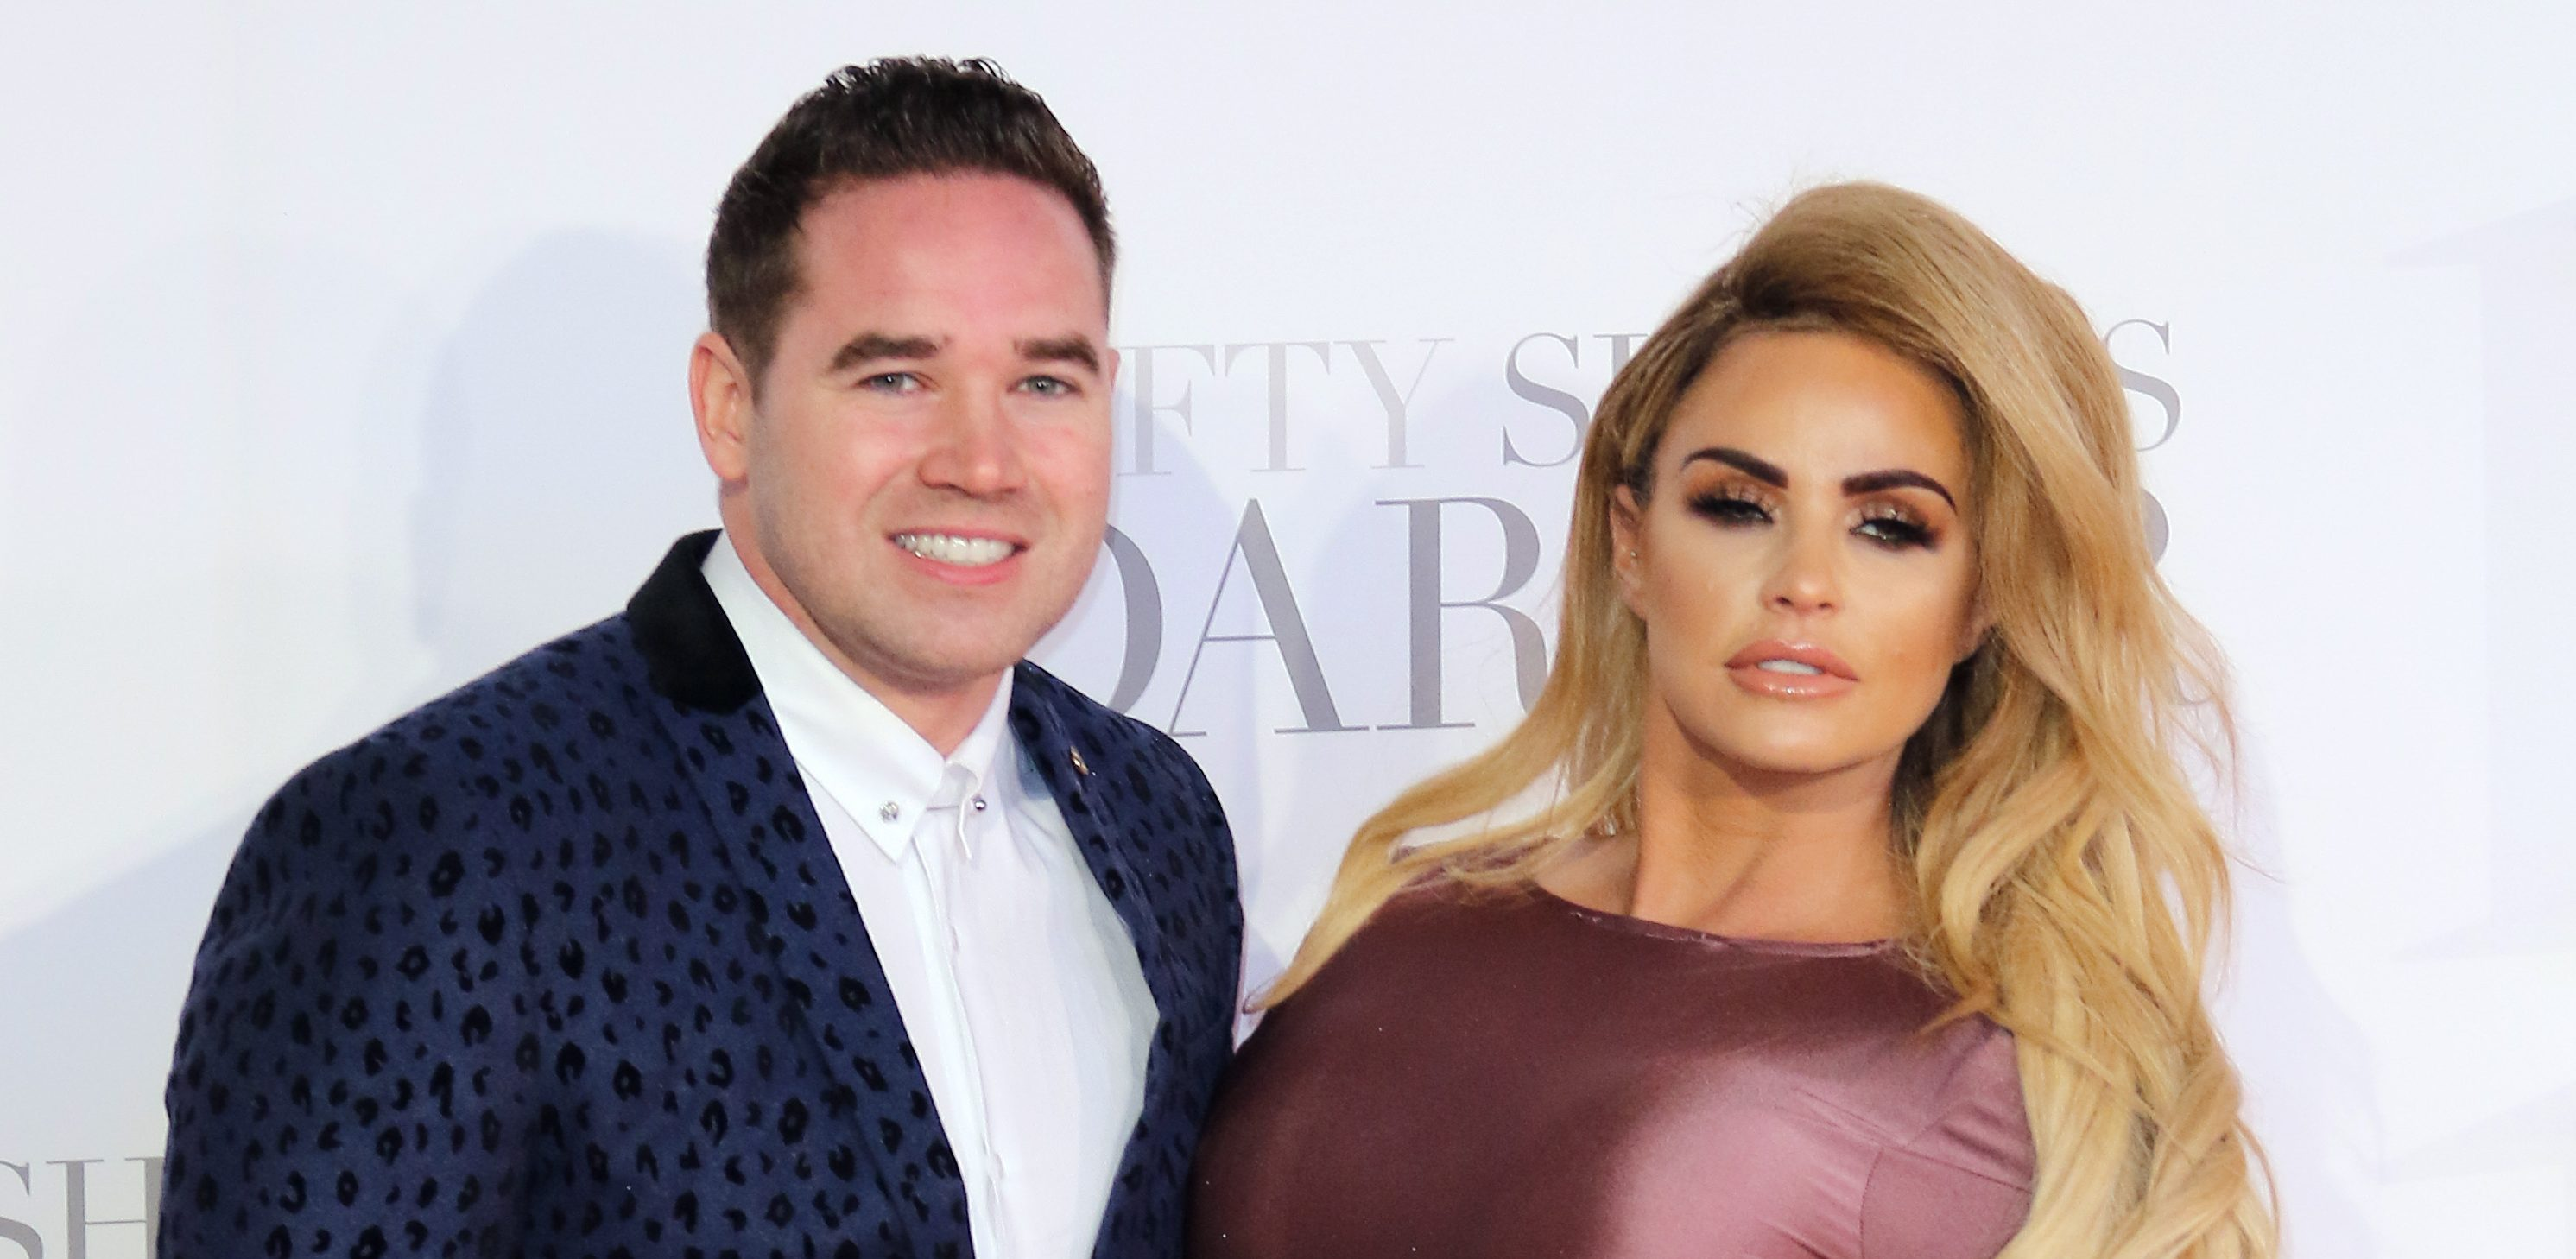 Katie Price's ex husband Kieran Hayler claims they 'made up' his sex addiction